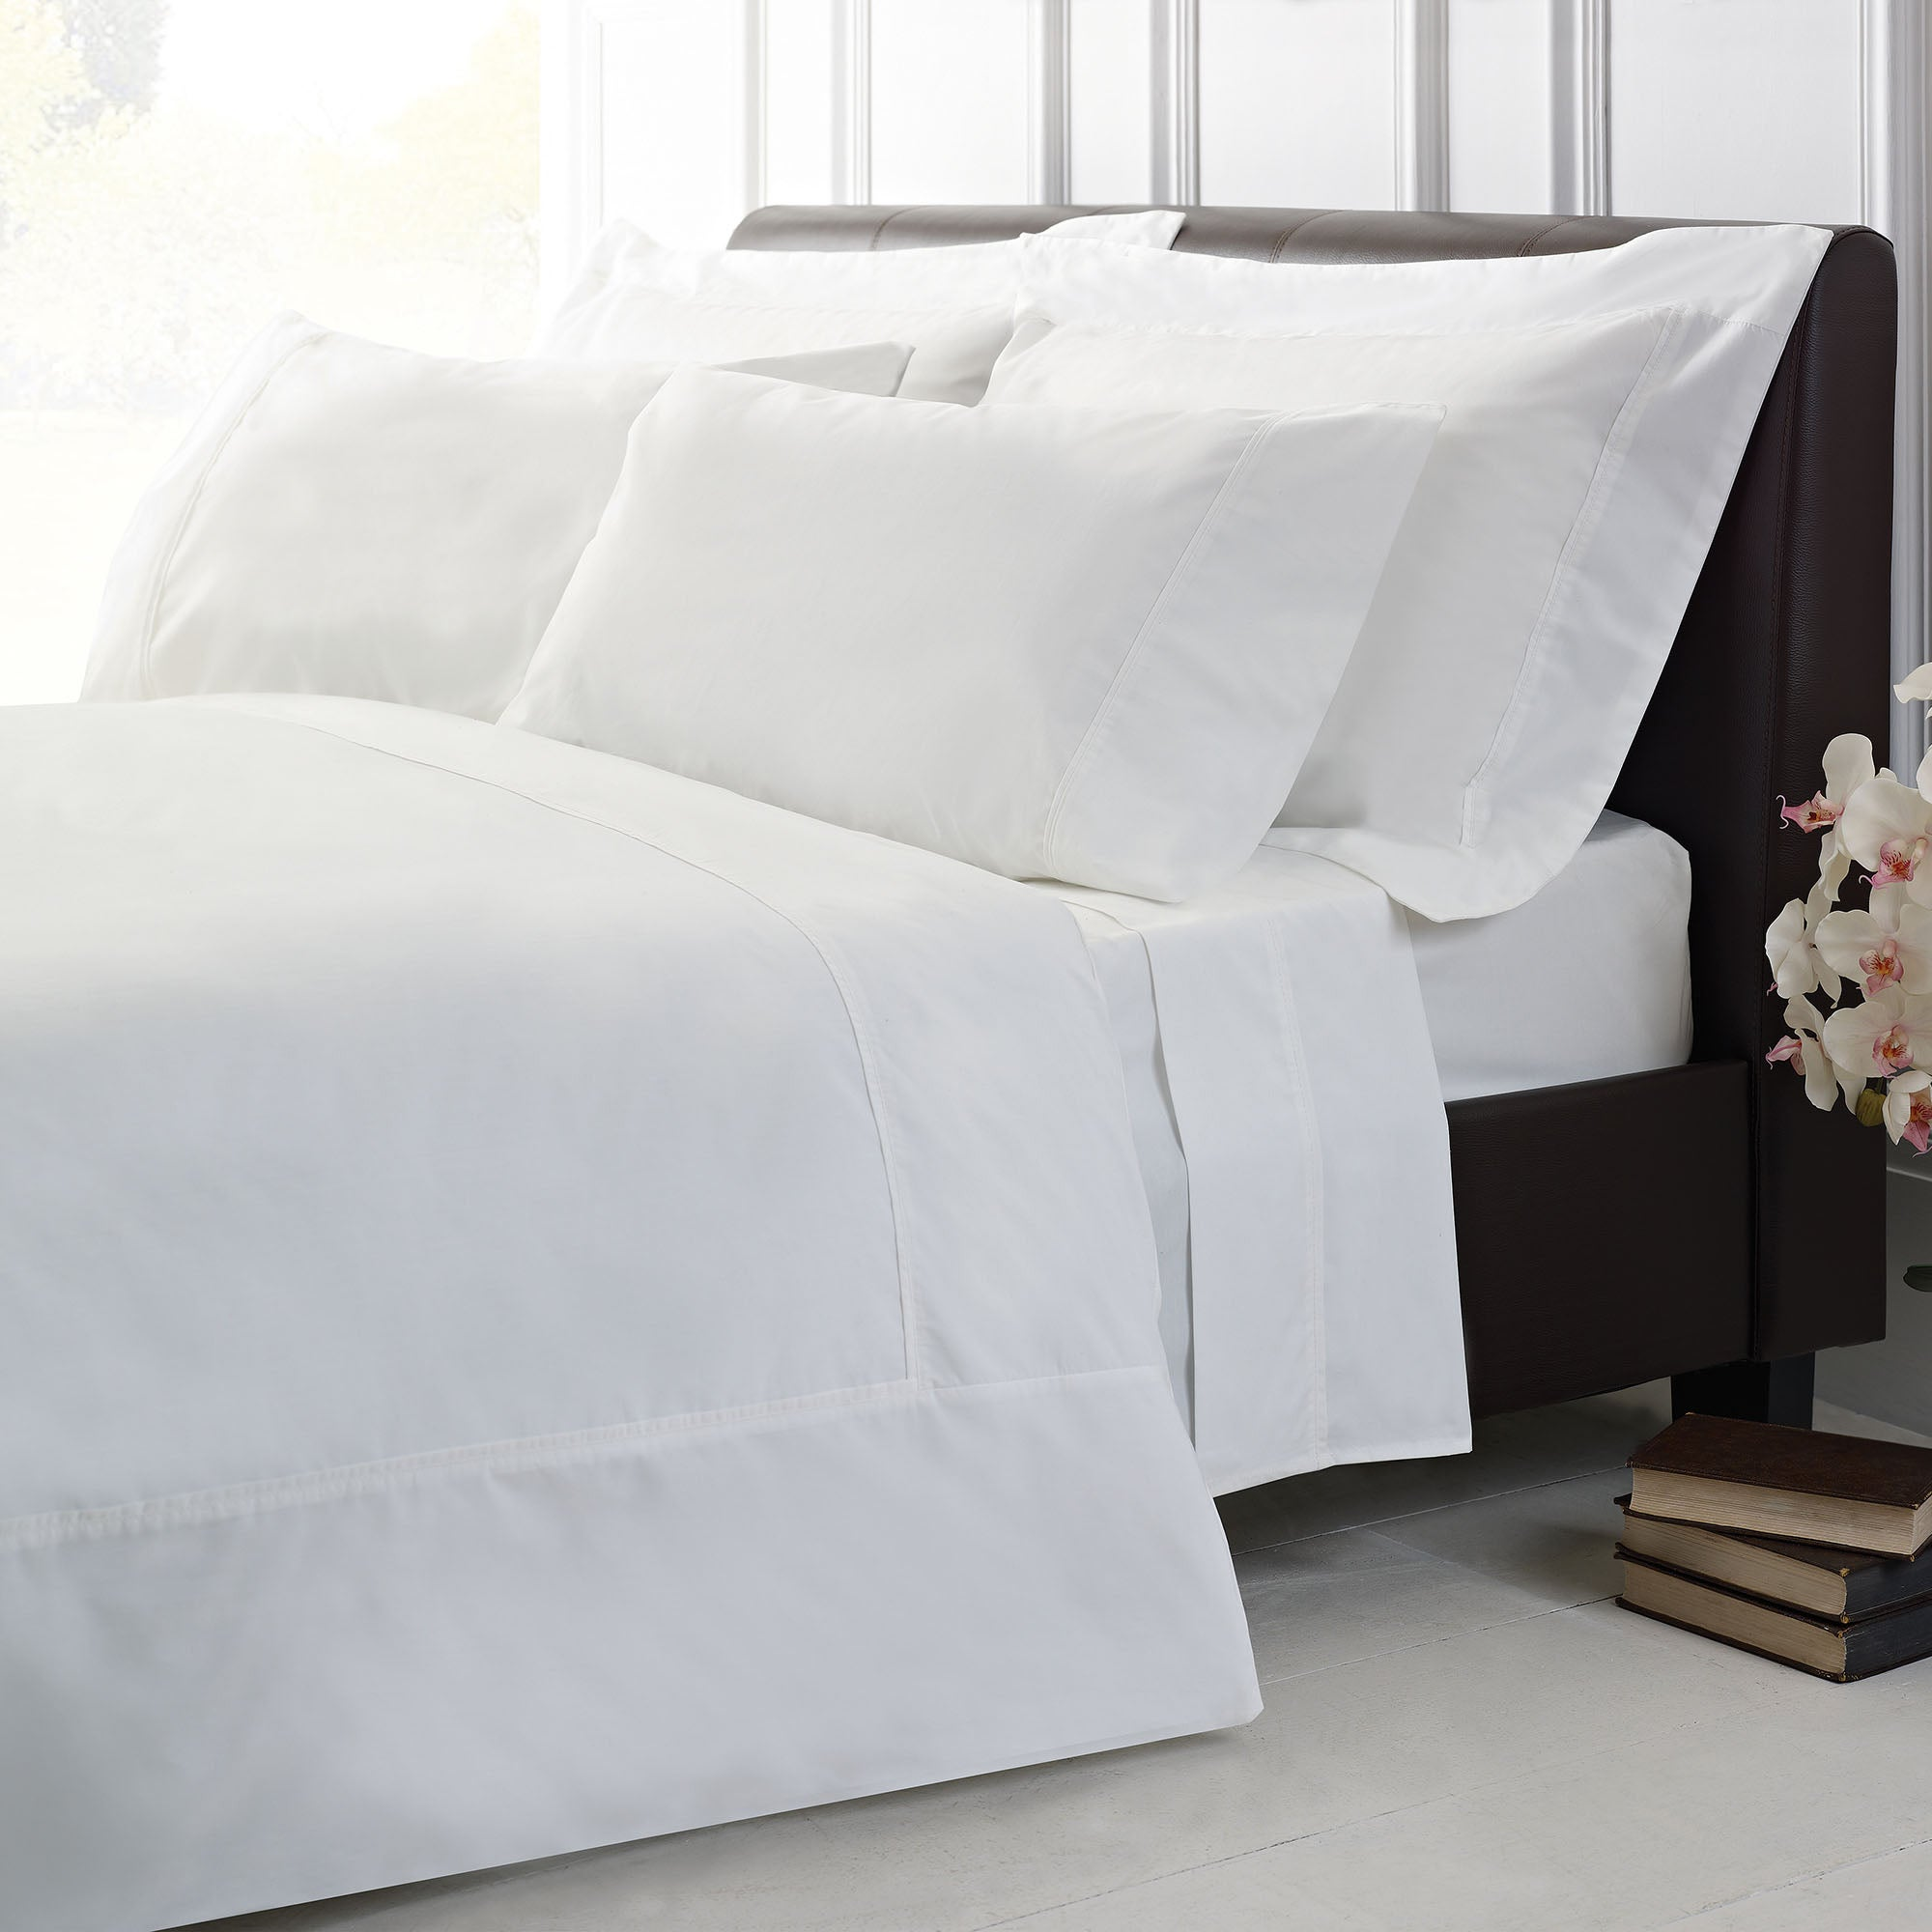 Dorma 300 Thread Count Bed Linen Collection